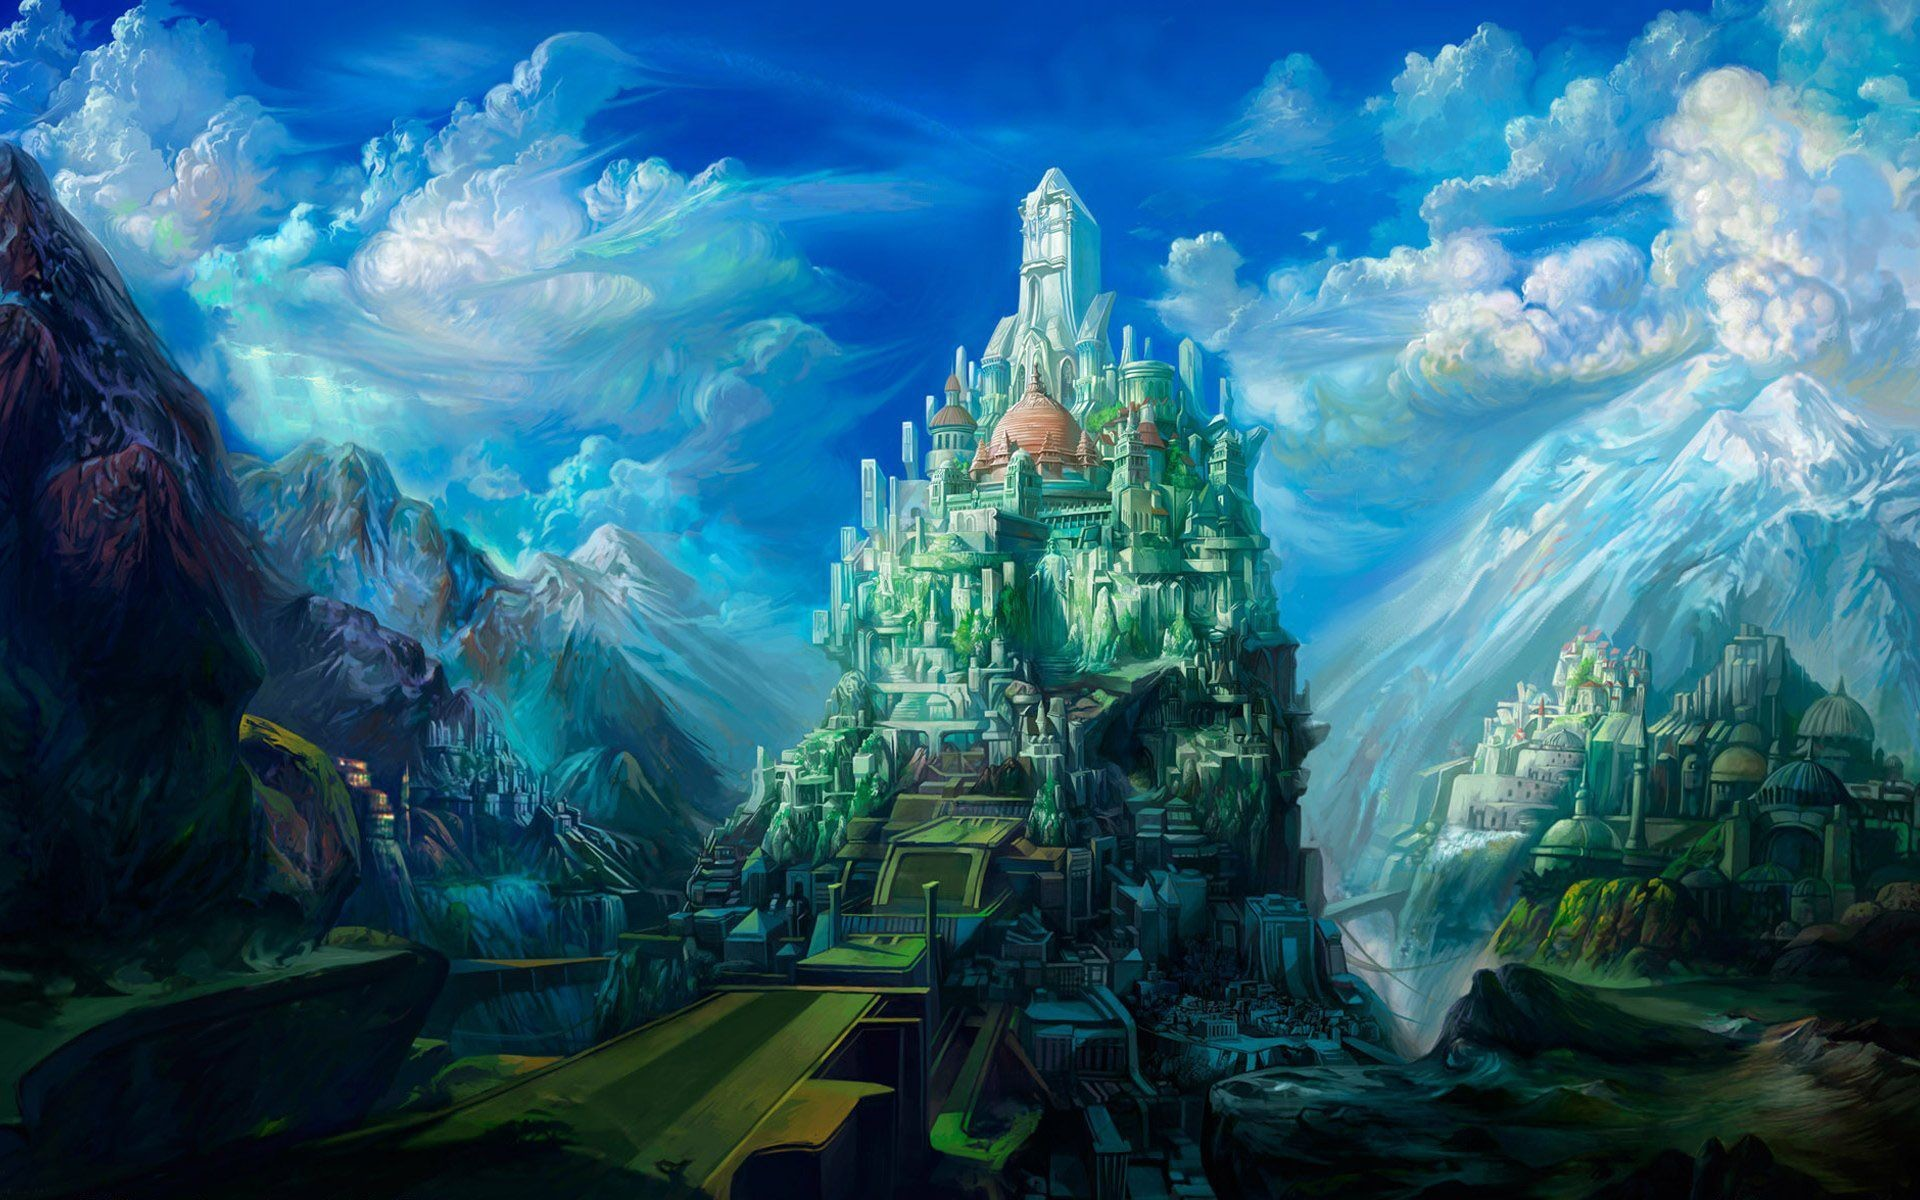 1920x1200 fantasy castle wallpaper mobile with high resolution wallpaper desktop on  anime category similar with castle lanfscape